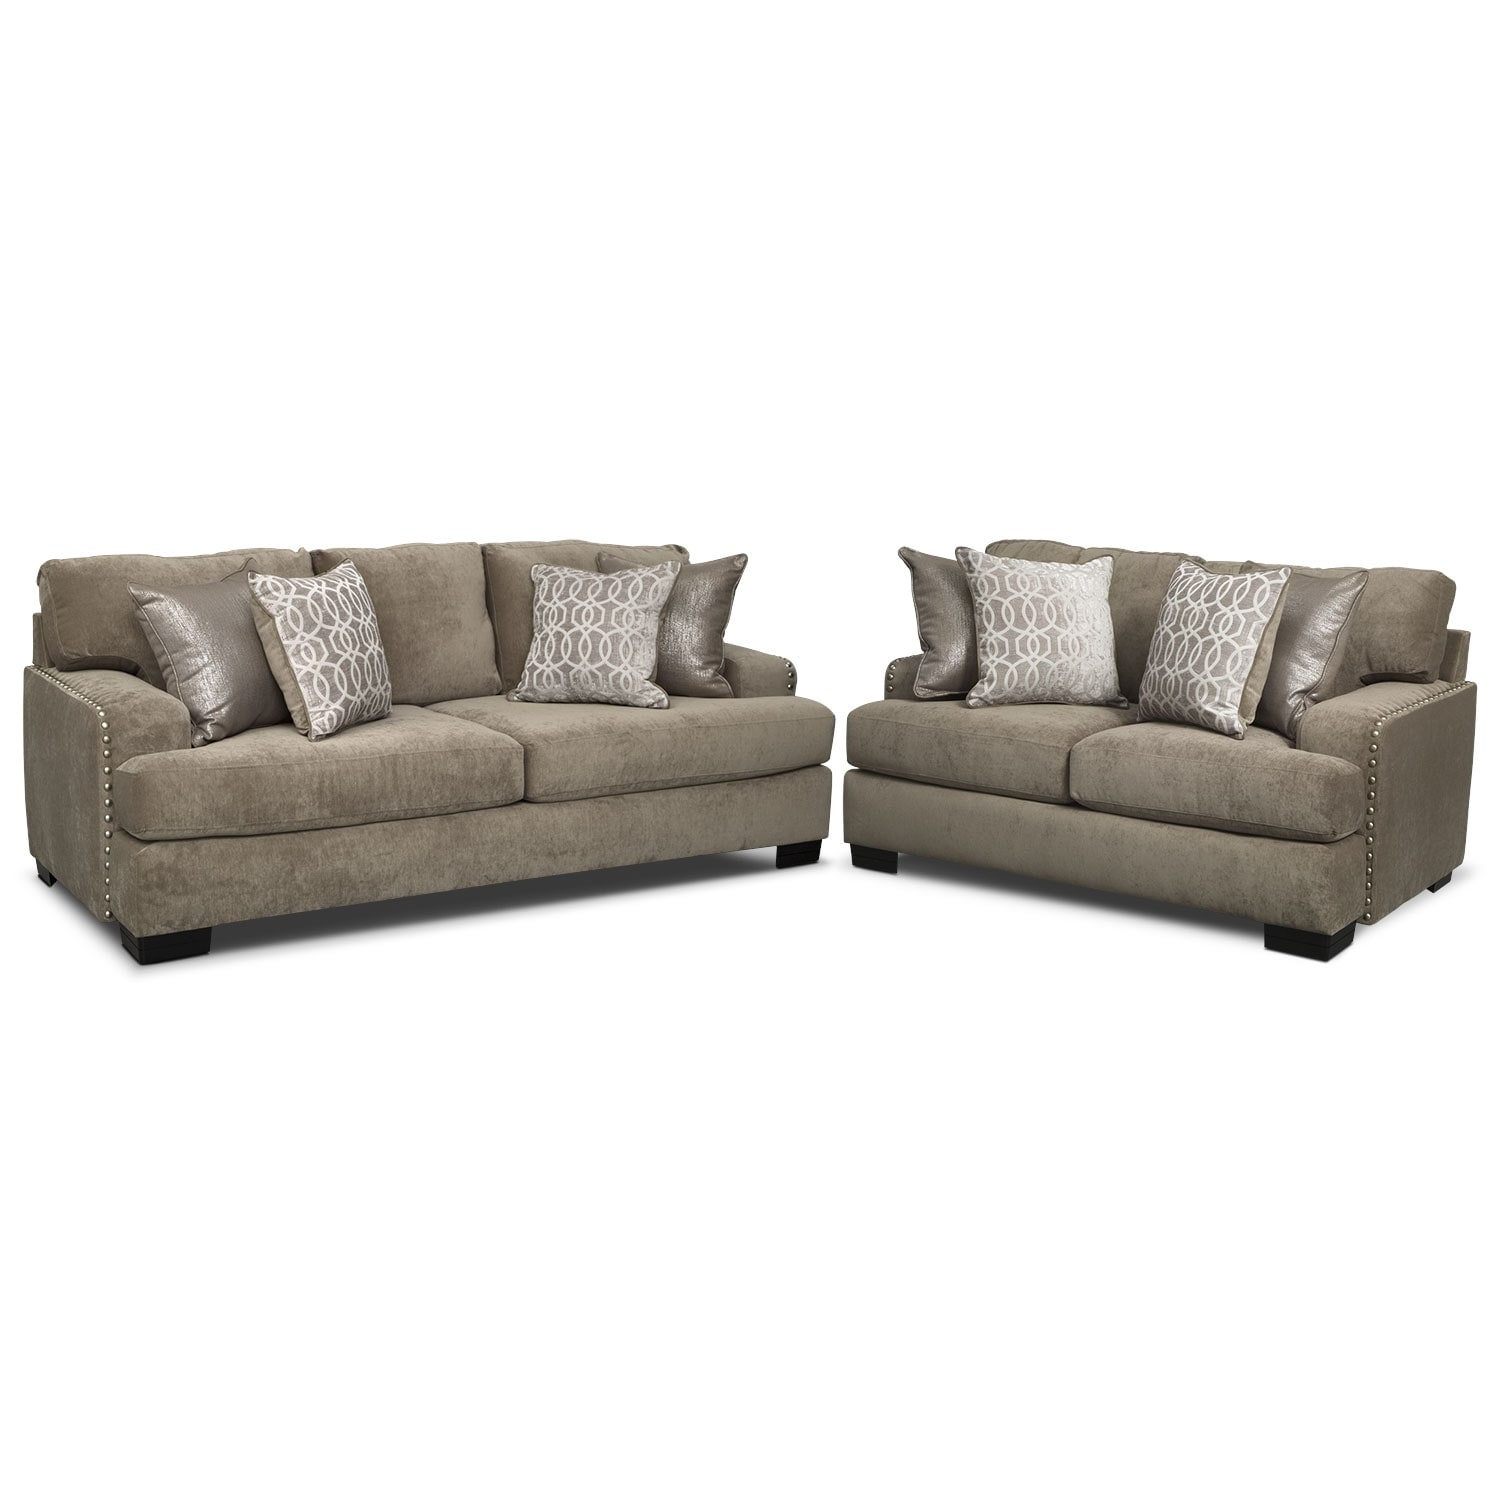 Living Room Furniture - Tempo 2 Pc. Living Room